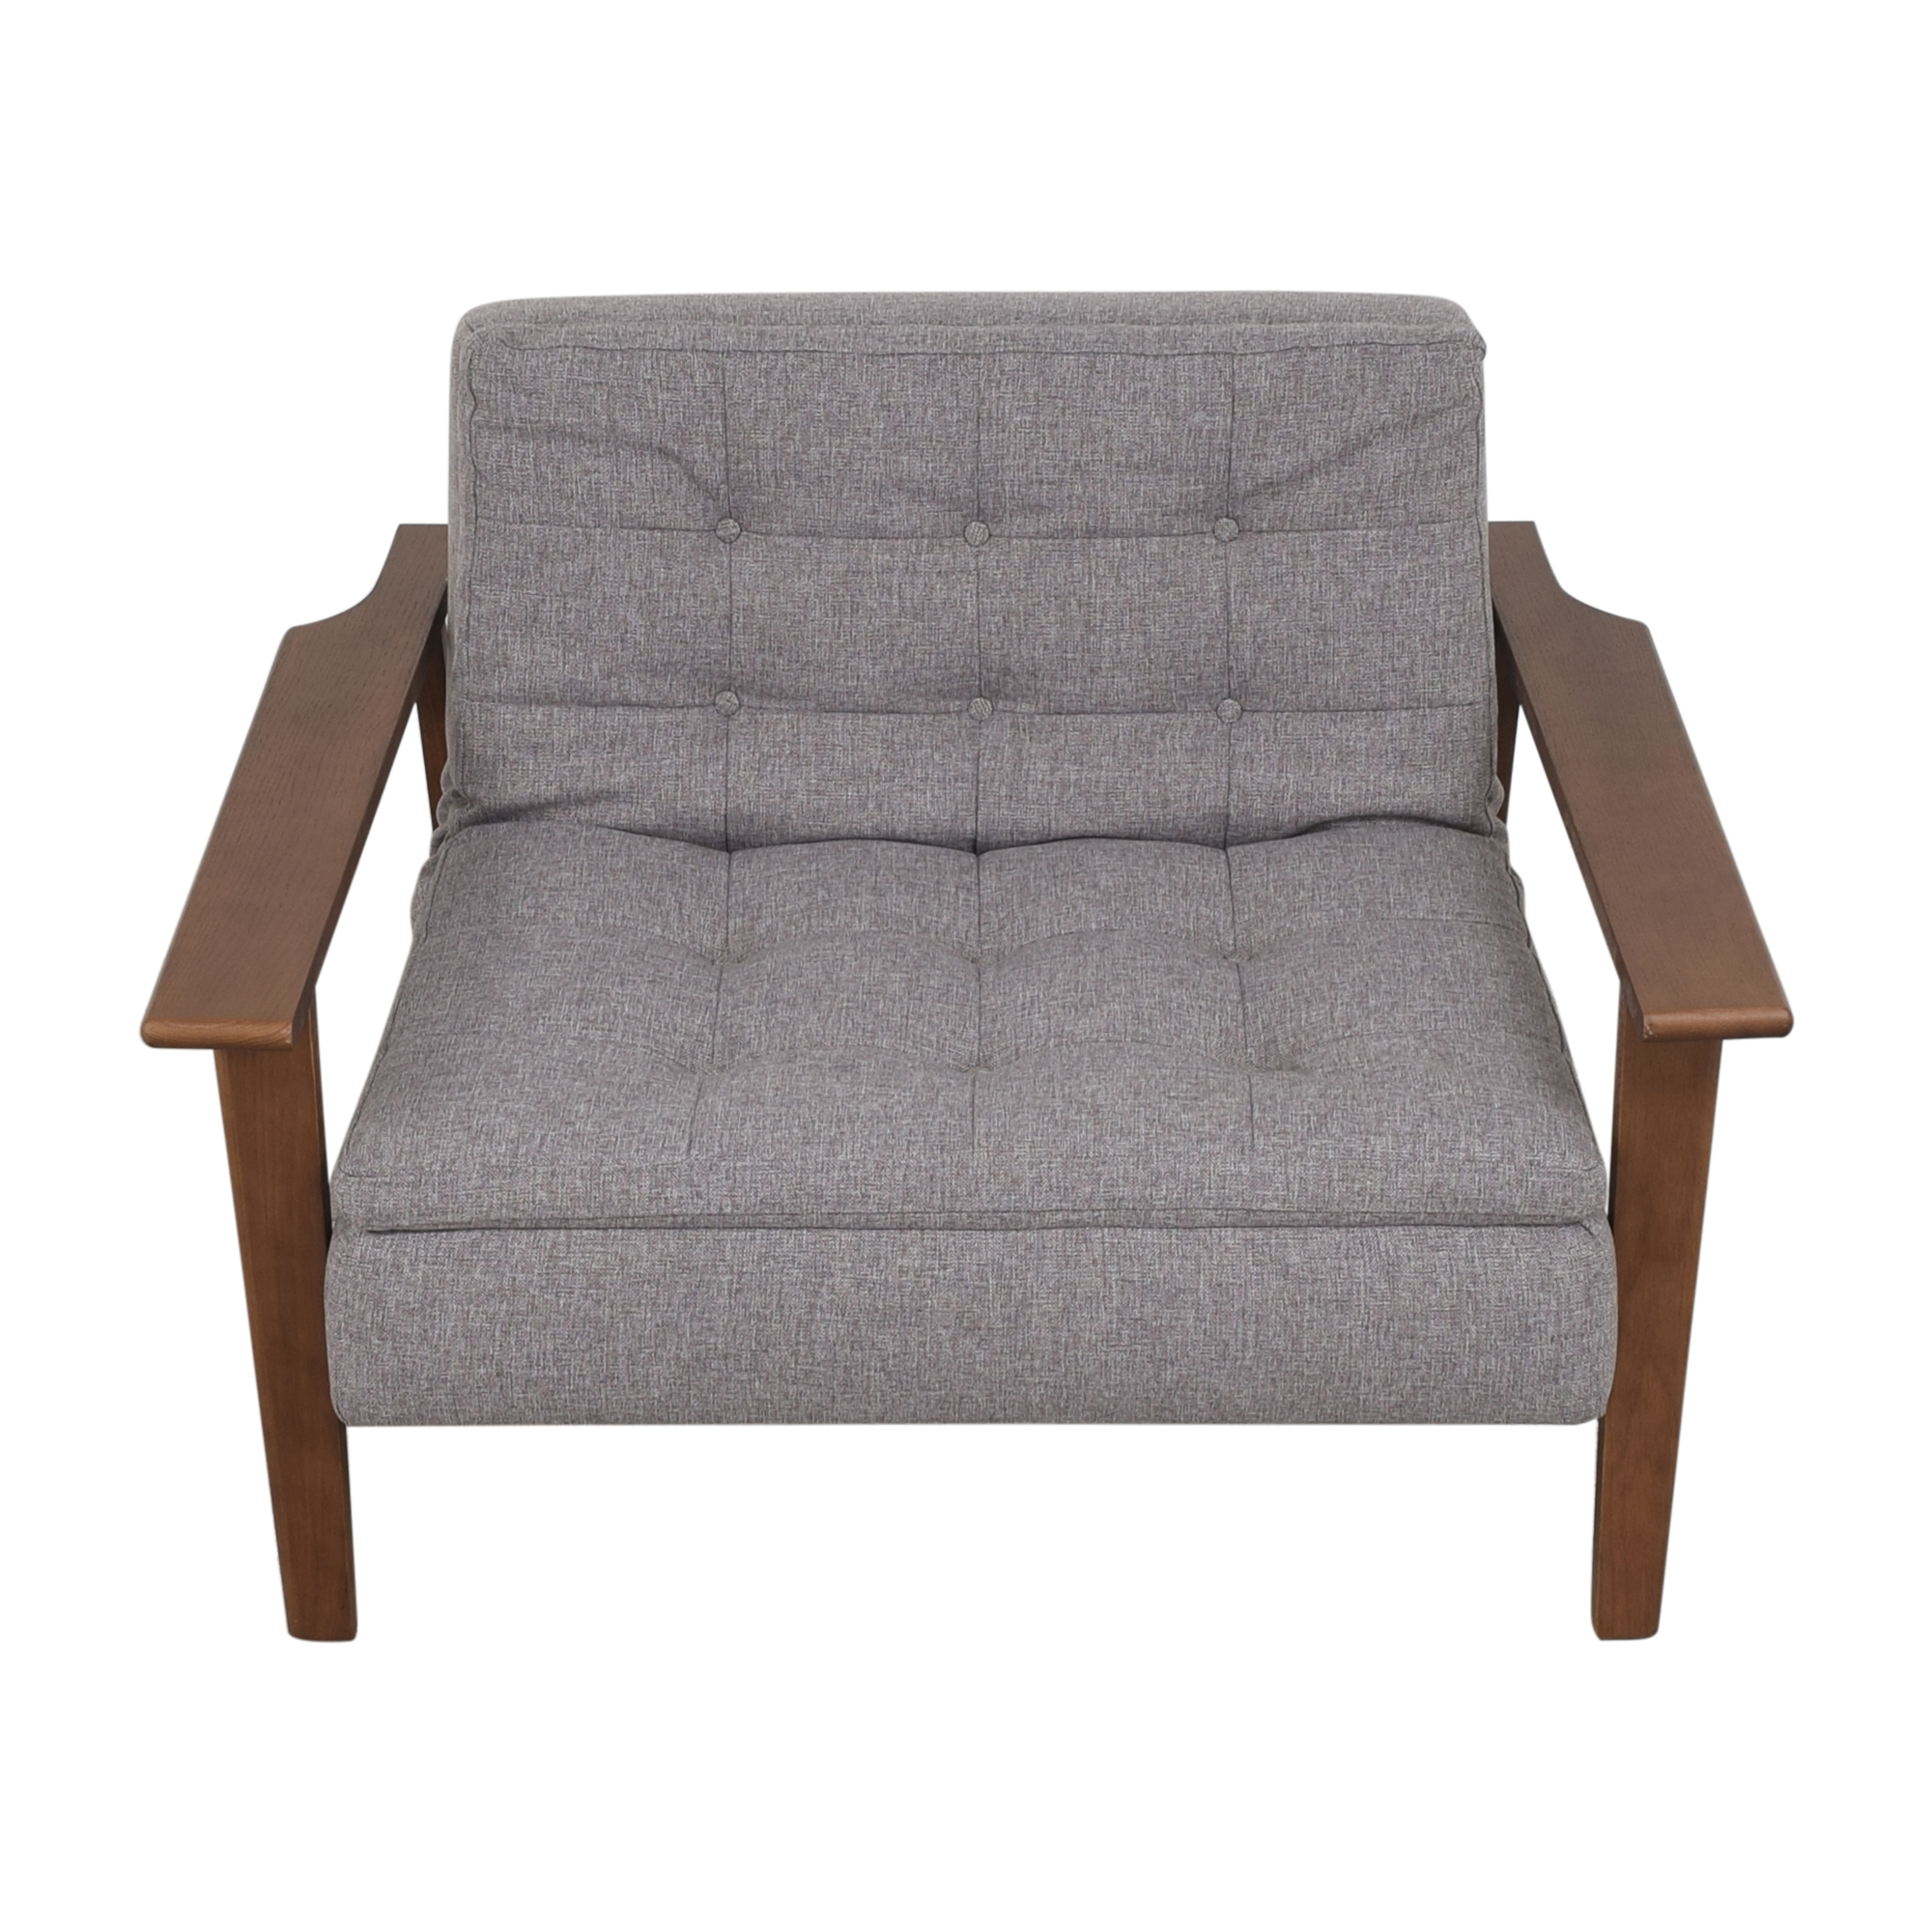 buy Innovation Living Innovation Living Tufted Accent Chair online